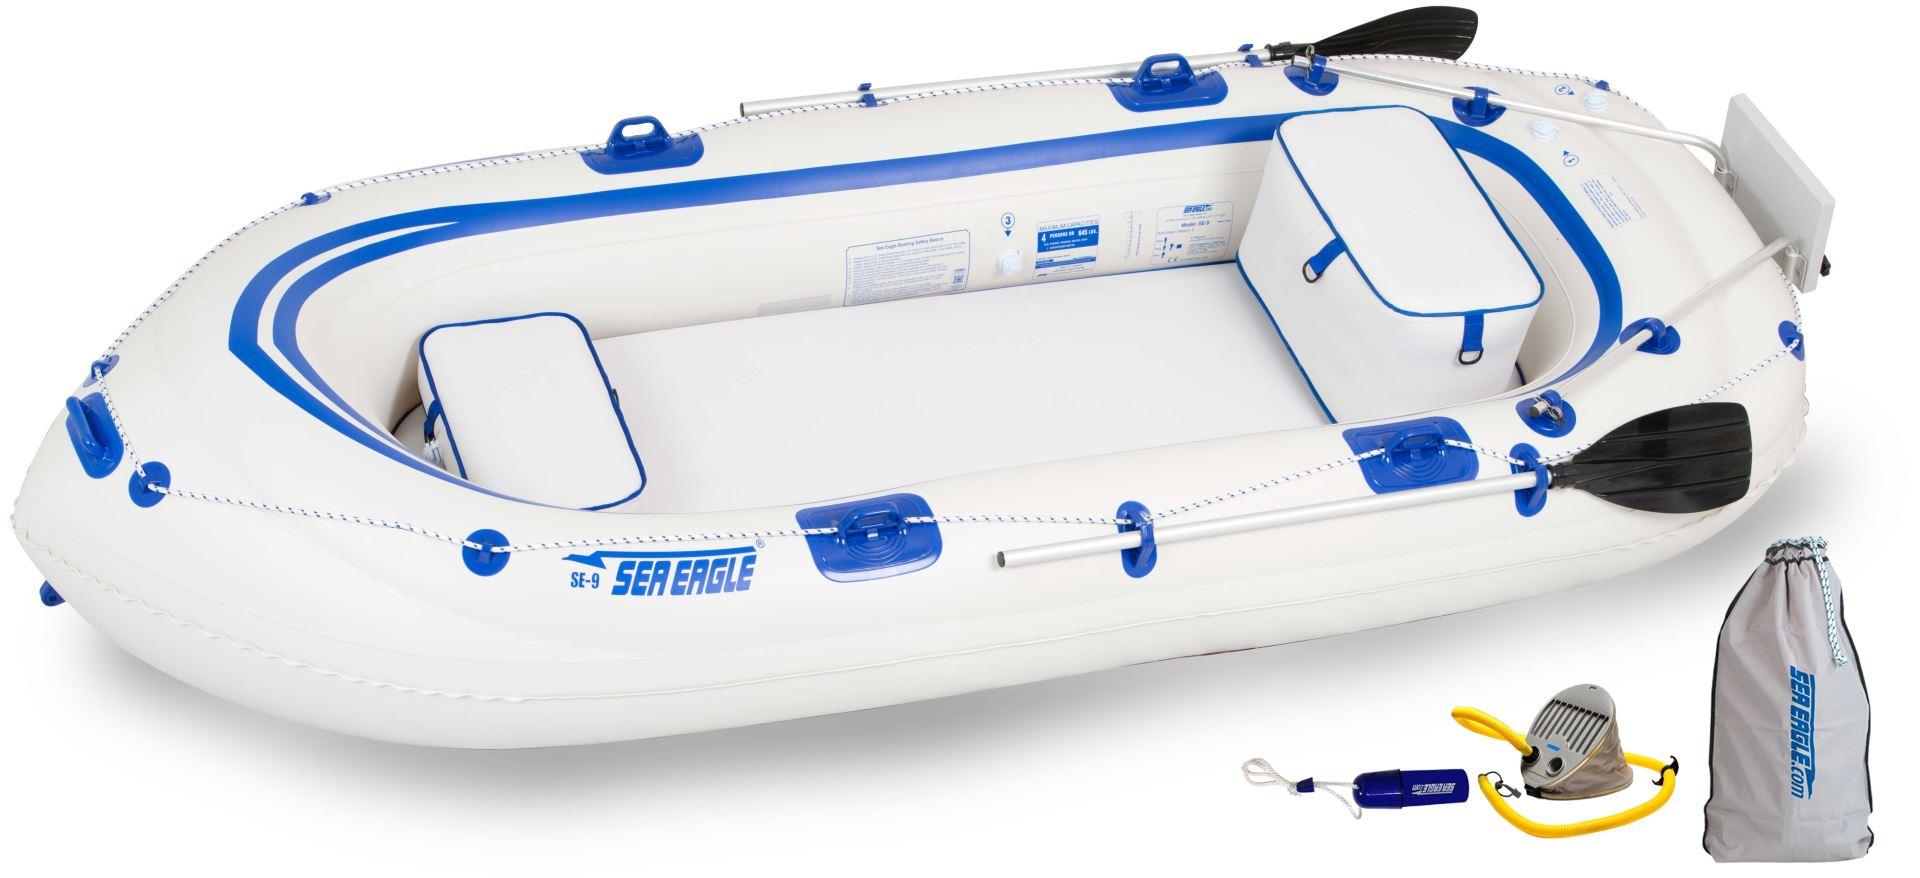 fishing raft sea eagle 9 inflatable